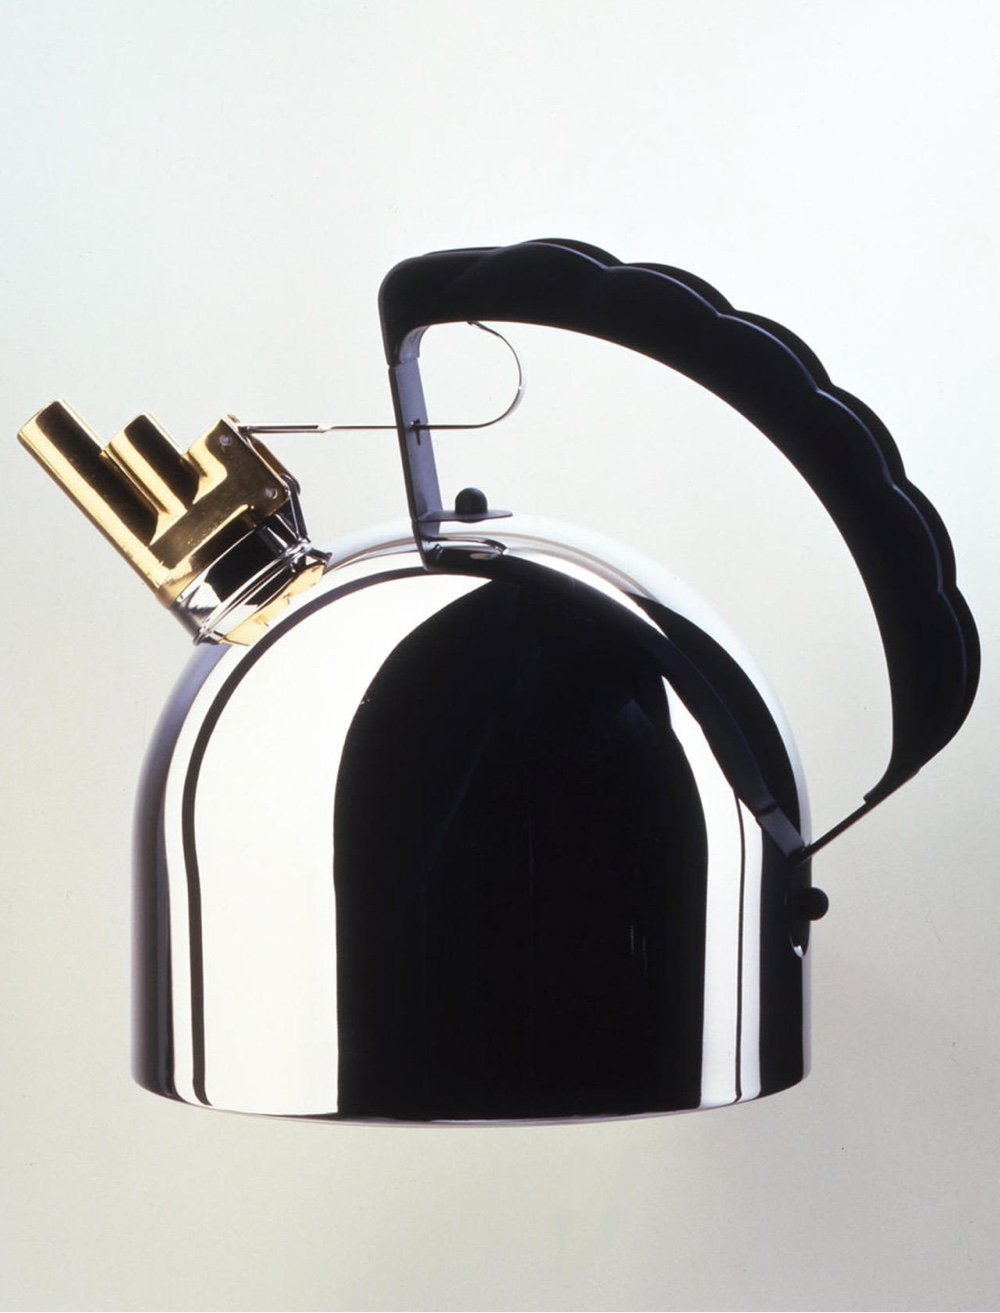 9091 kettle (1983) for Alessi. Image courtesy of Richard Sapper.